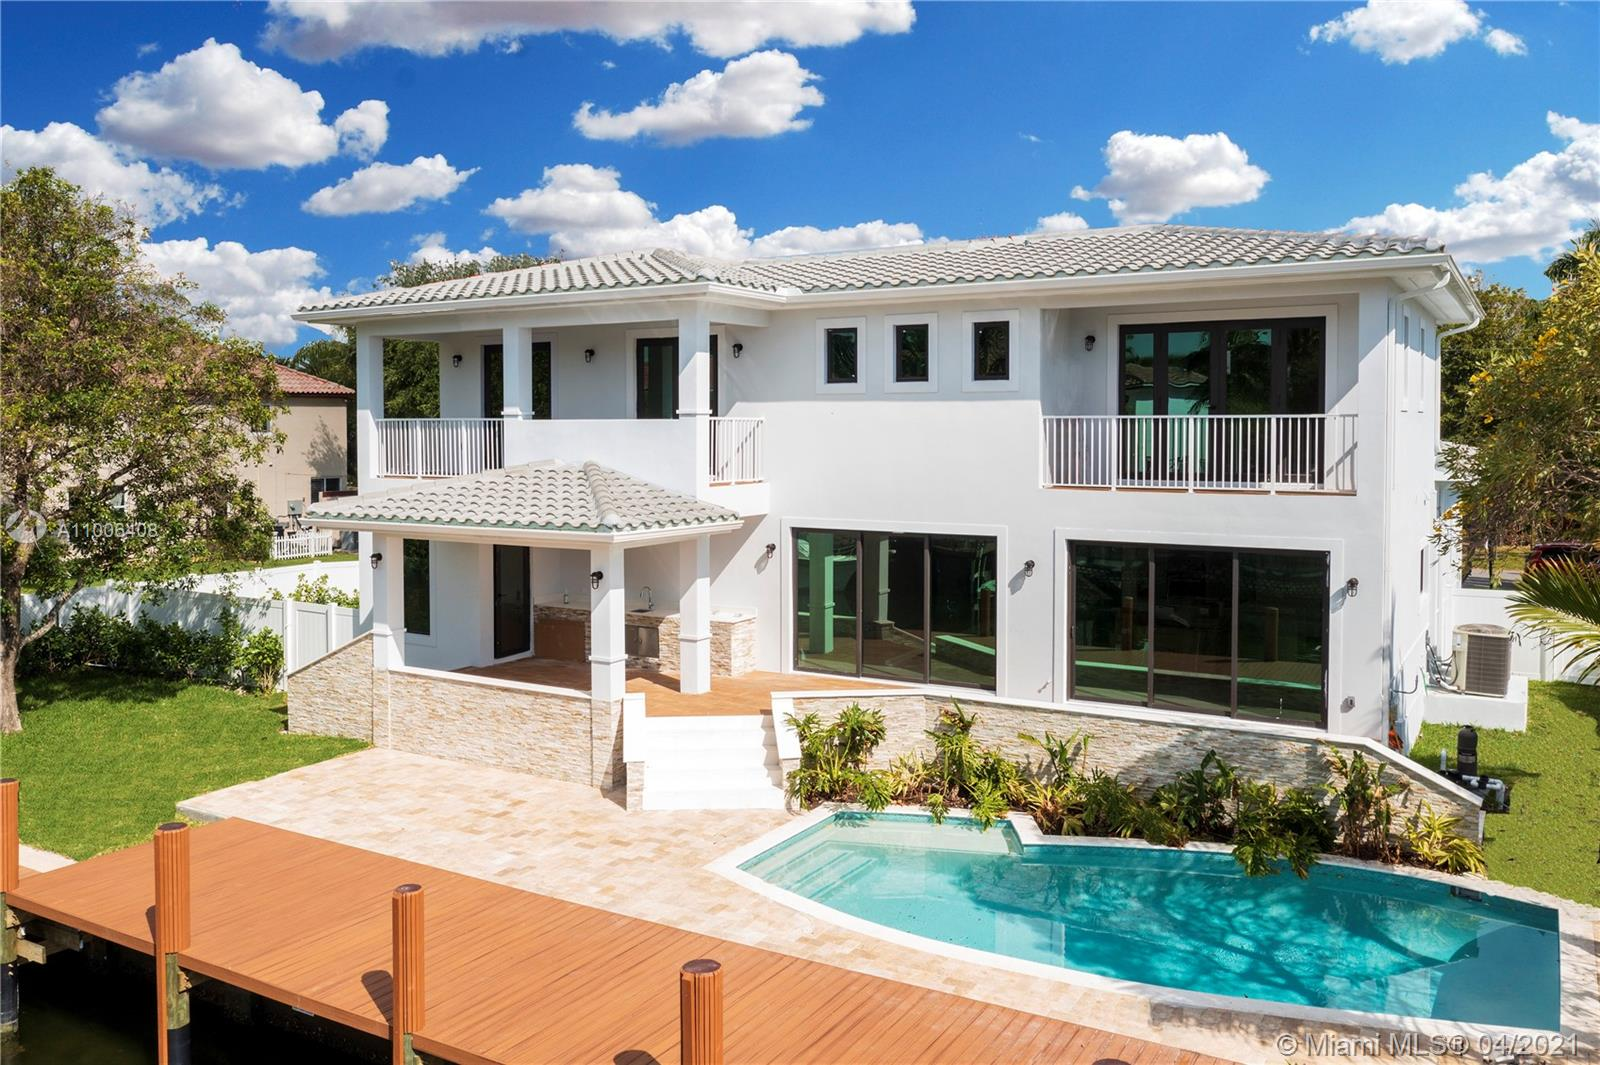 Welcome to this beautifully designed Hollywood home located in an exclusive area of South Lake on a 100' waterfront lot with direct ocean access seconds away from the Intracoastal. The luxurious new construction spans a total of 5,000 Sq Ft, with 3,660 Sq Ft of living area, 5 bedrooms, 6.5 bathrooms on a 12,000 Sq Ft lot with sparkling pool and a new 100' dock. High quality construction and top of the line designer finishes, Florense kitchen and baths, Miele appliances, wood floors [etc] - all add to an exclusive appeal that makes this magnificent property stand out from the rest. The 2-car garage is complemented by a carport and a large driveway that can fit up to 4 cars. Waterfront new construction priced at $700 per Sq Ft is a rare find.